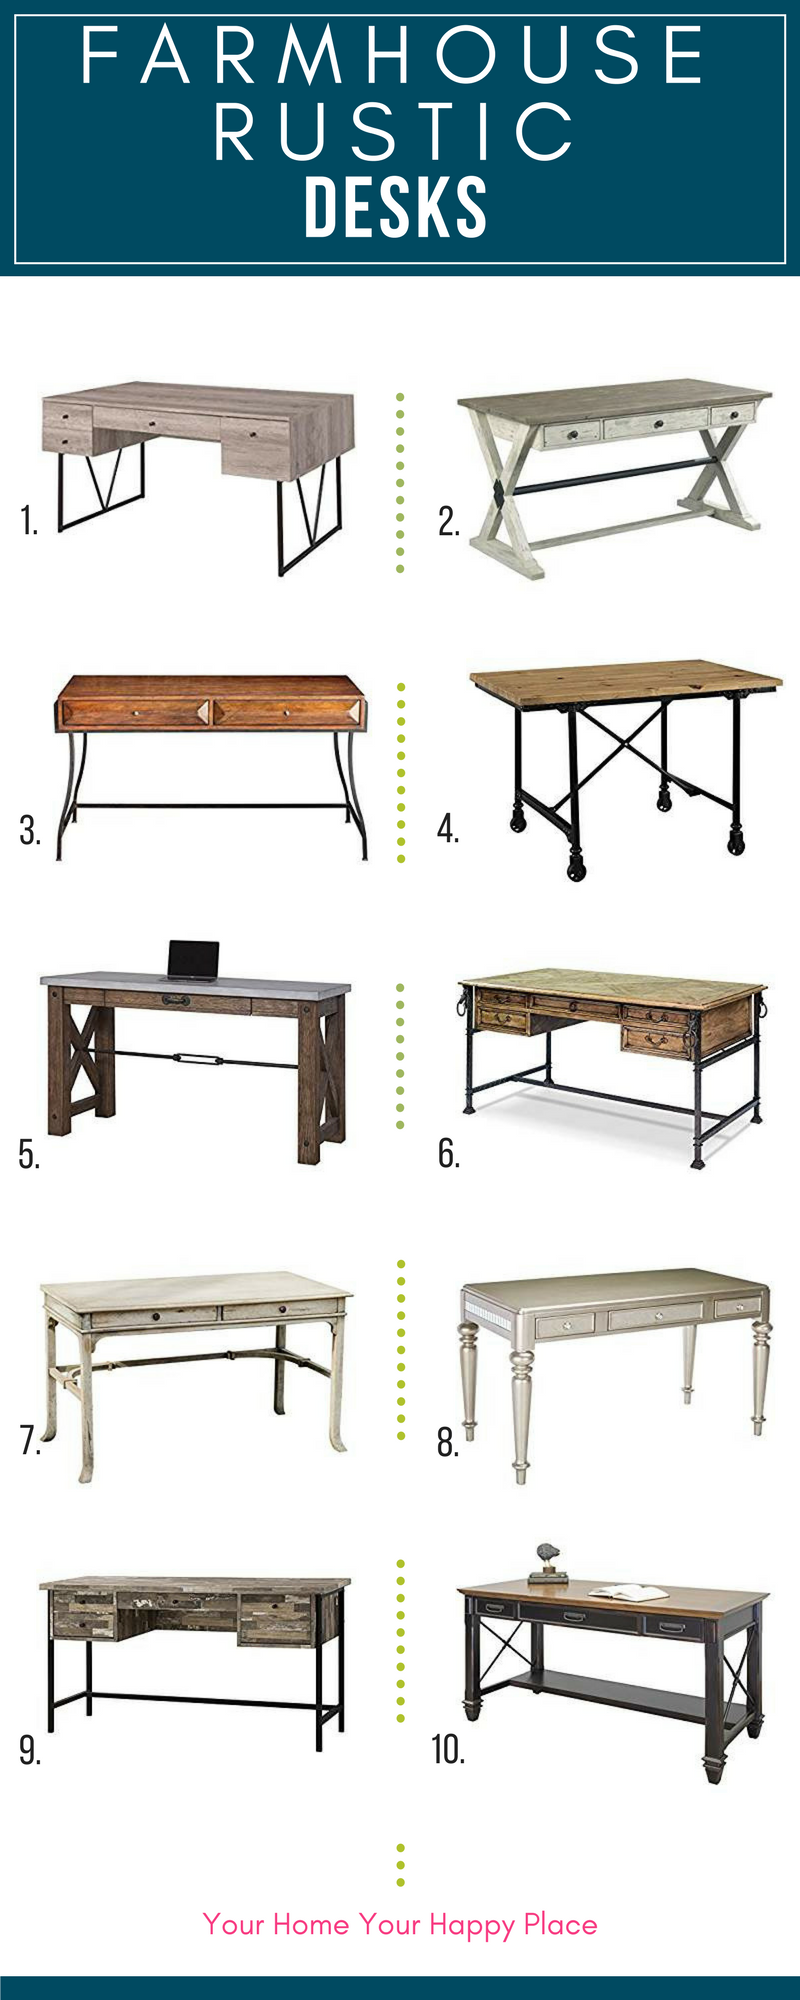 Farmhouse Rustic Desks For Your Home Office At Yourhomeyourhappyplace Com